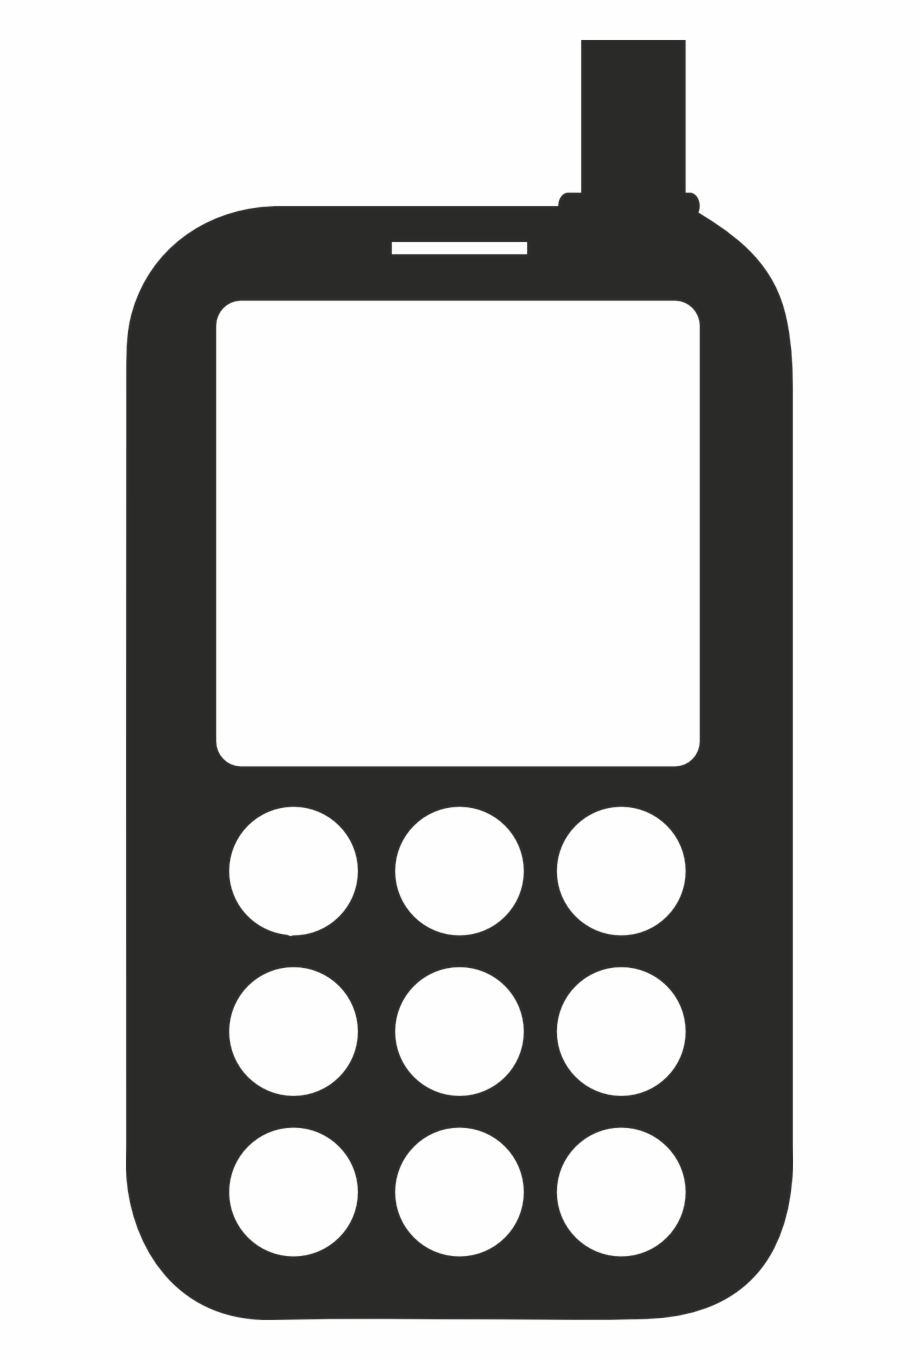 Phone Icon Mobile Phone Logo Png Image.